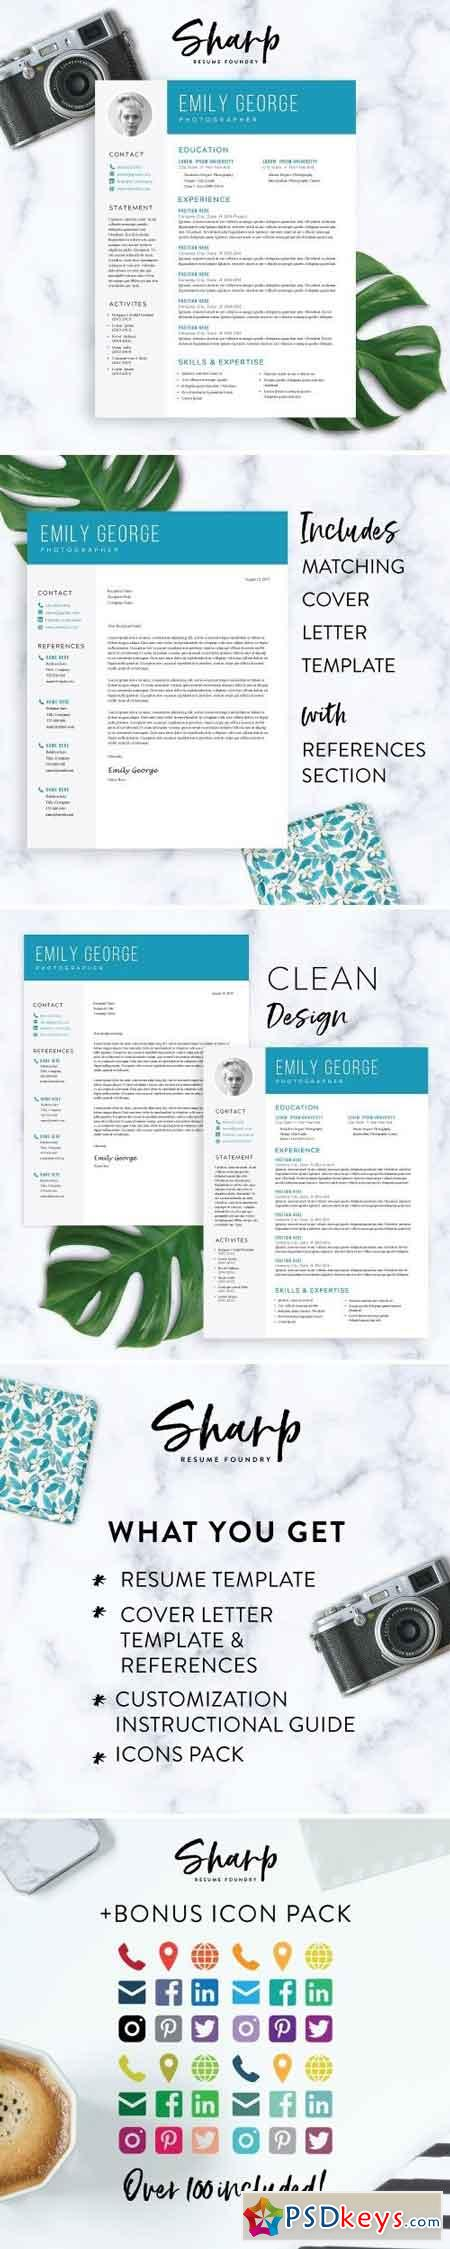 Modern Resume Template For Word   Free Download Photoshop